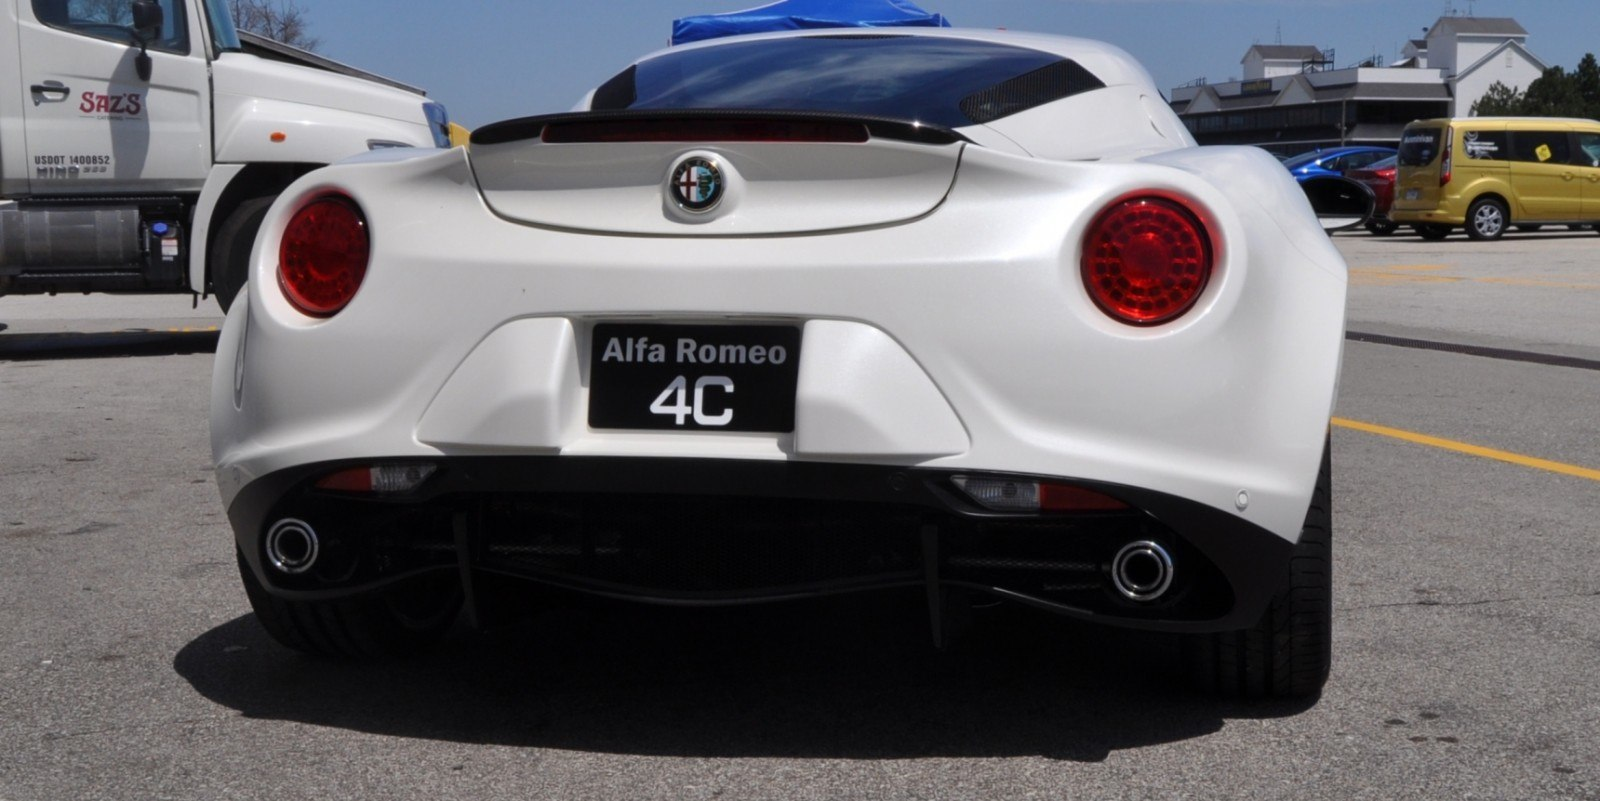 Gorgeous 2015 Alfa-Romeo 4C Revealed in Full USA Trim + New Headlights! 26